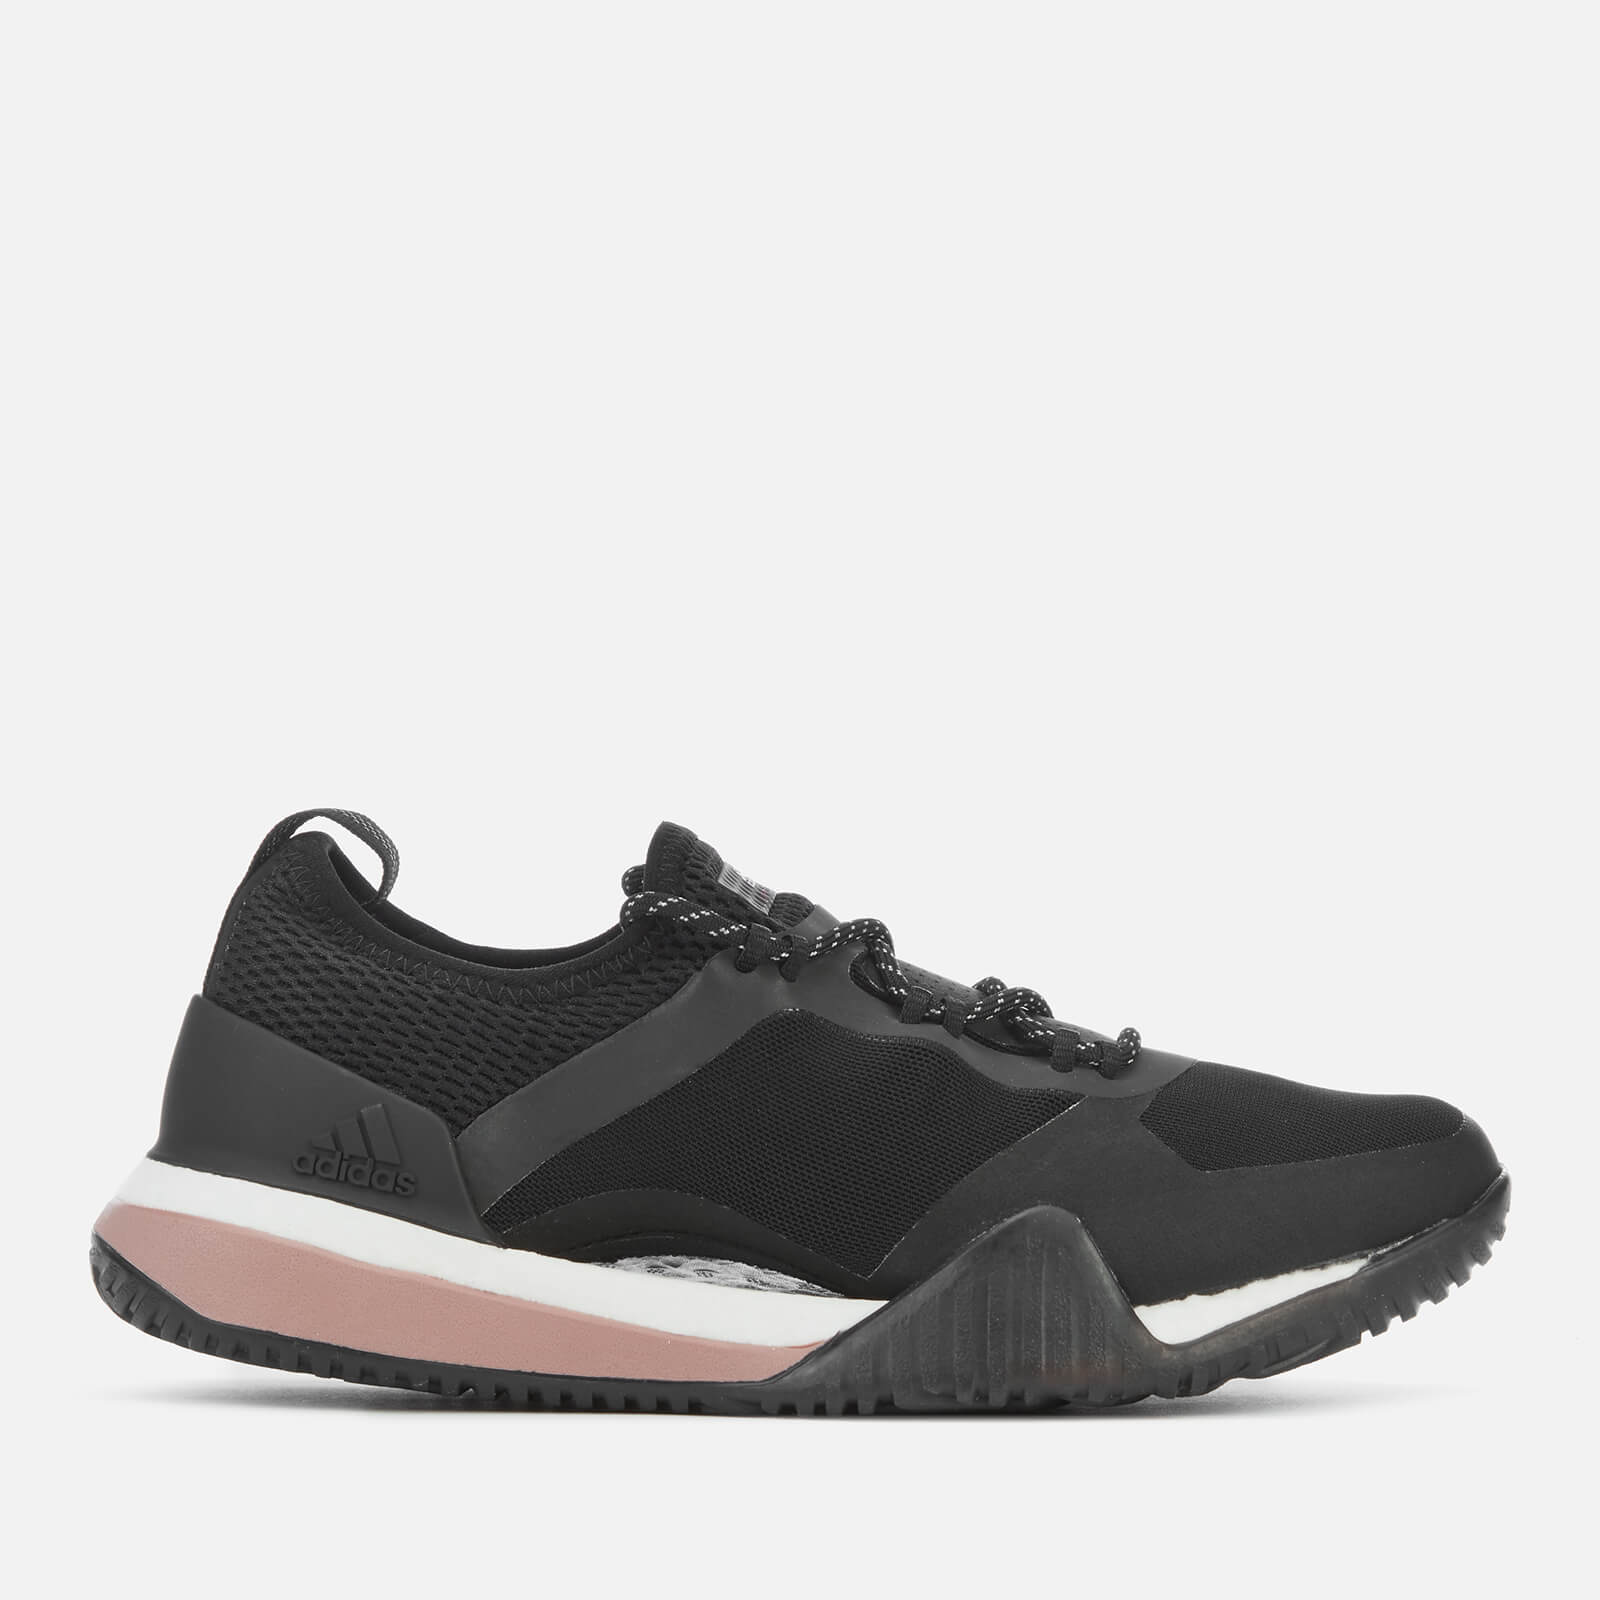 adidas by Stella McCartney Women s Pure Boost X TR 3.0 Trainers - Core Black  Pink Maroon - Free UK Delivery over £50 ad9d1699b